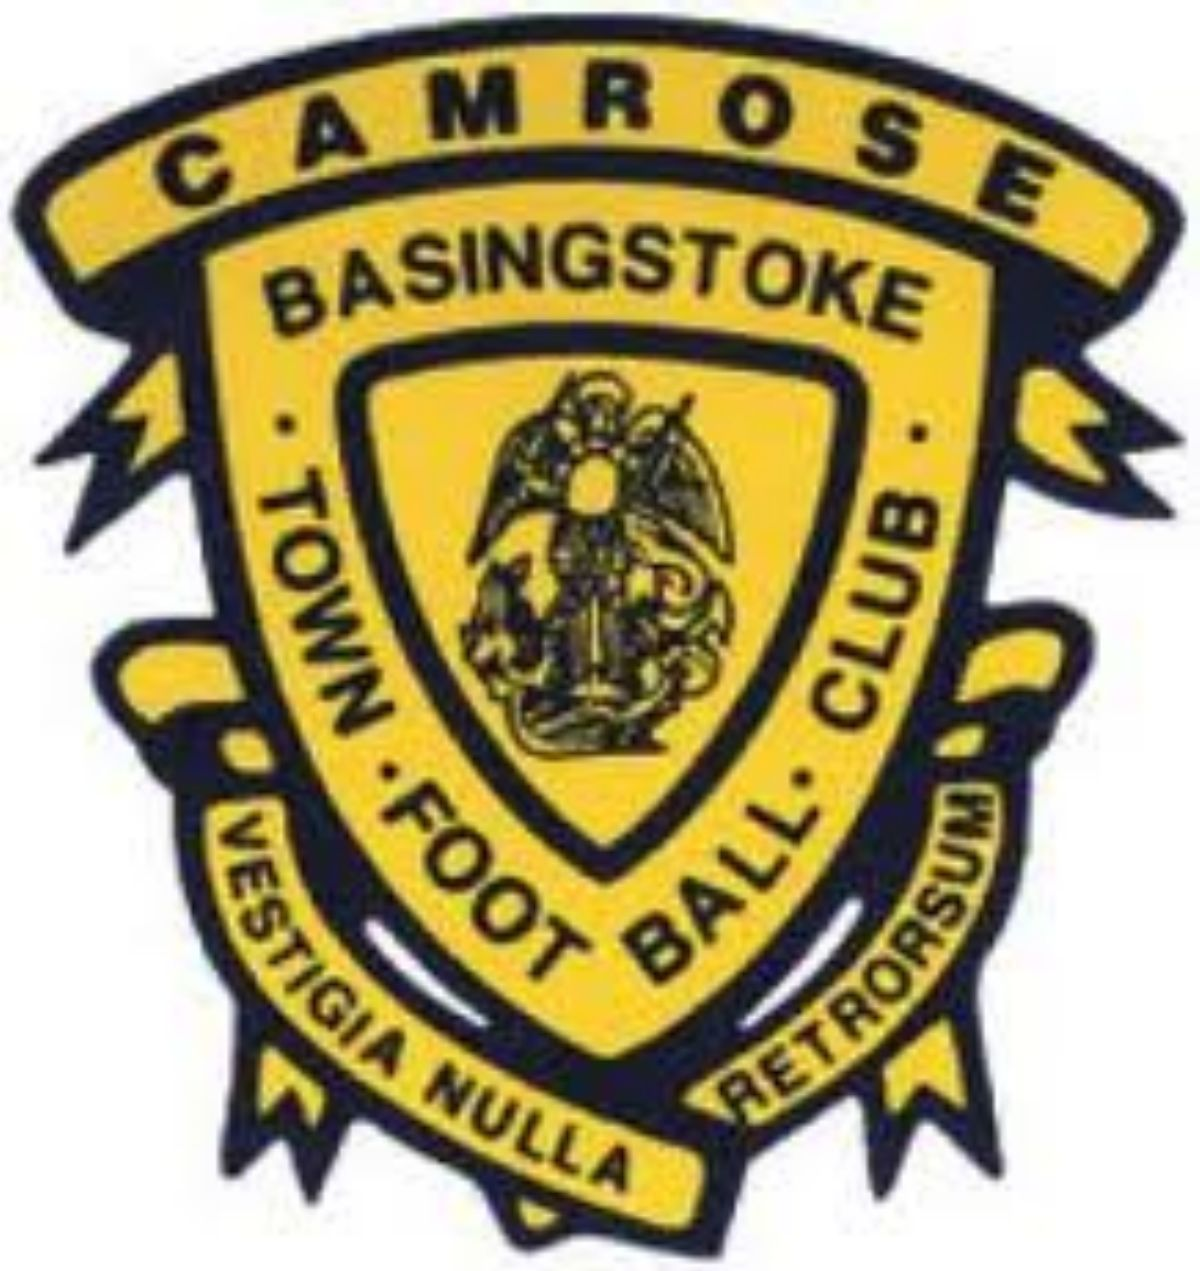 REPORT - Dover Athletic 1-1 Basingstoke Town